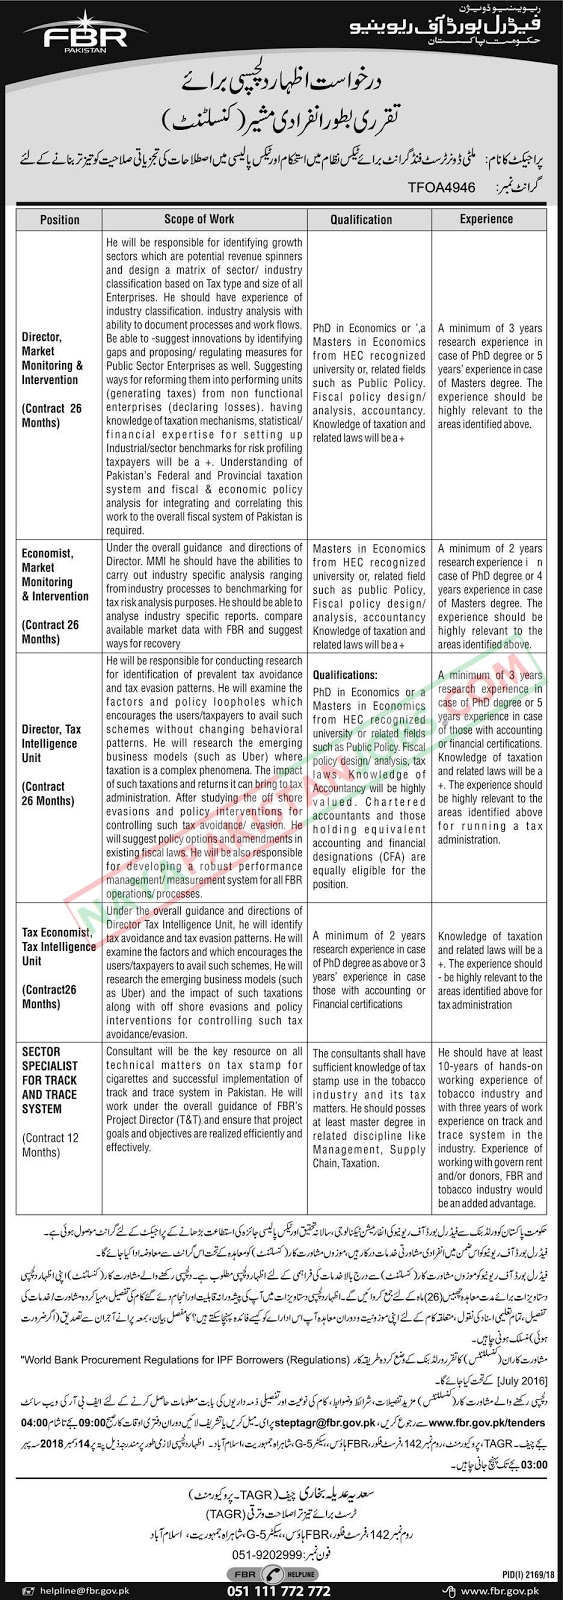 Latest Vacancies Announced in Federal Board Of Revenue Govt Of Pakistan FBR 14 November 2018 - Naya Pakistan